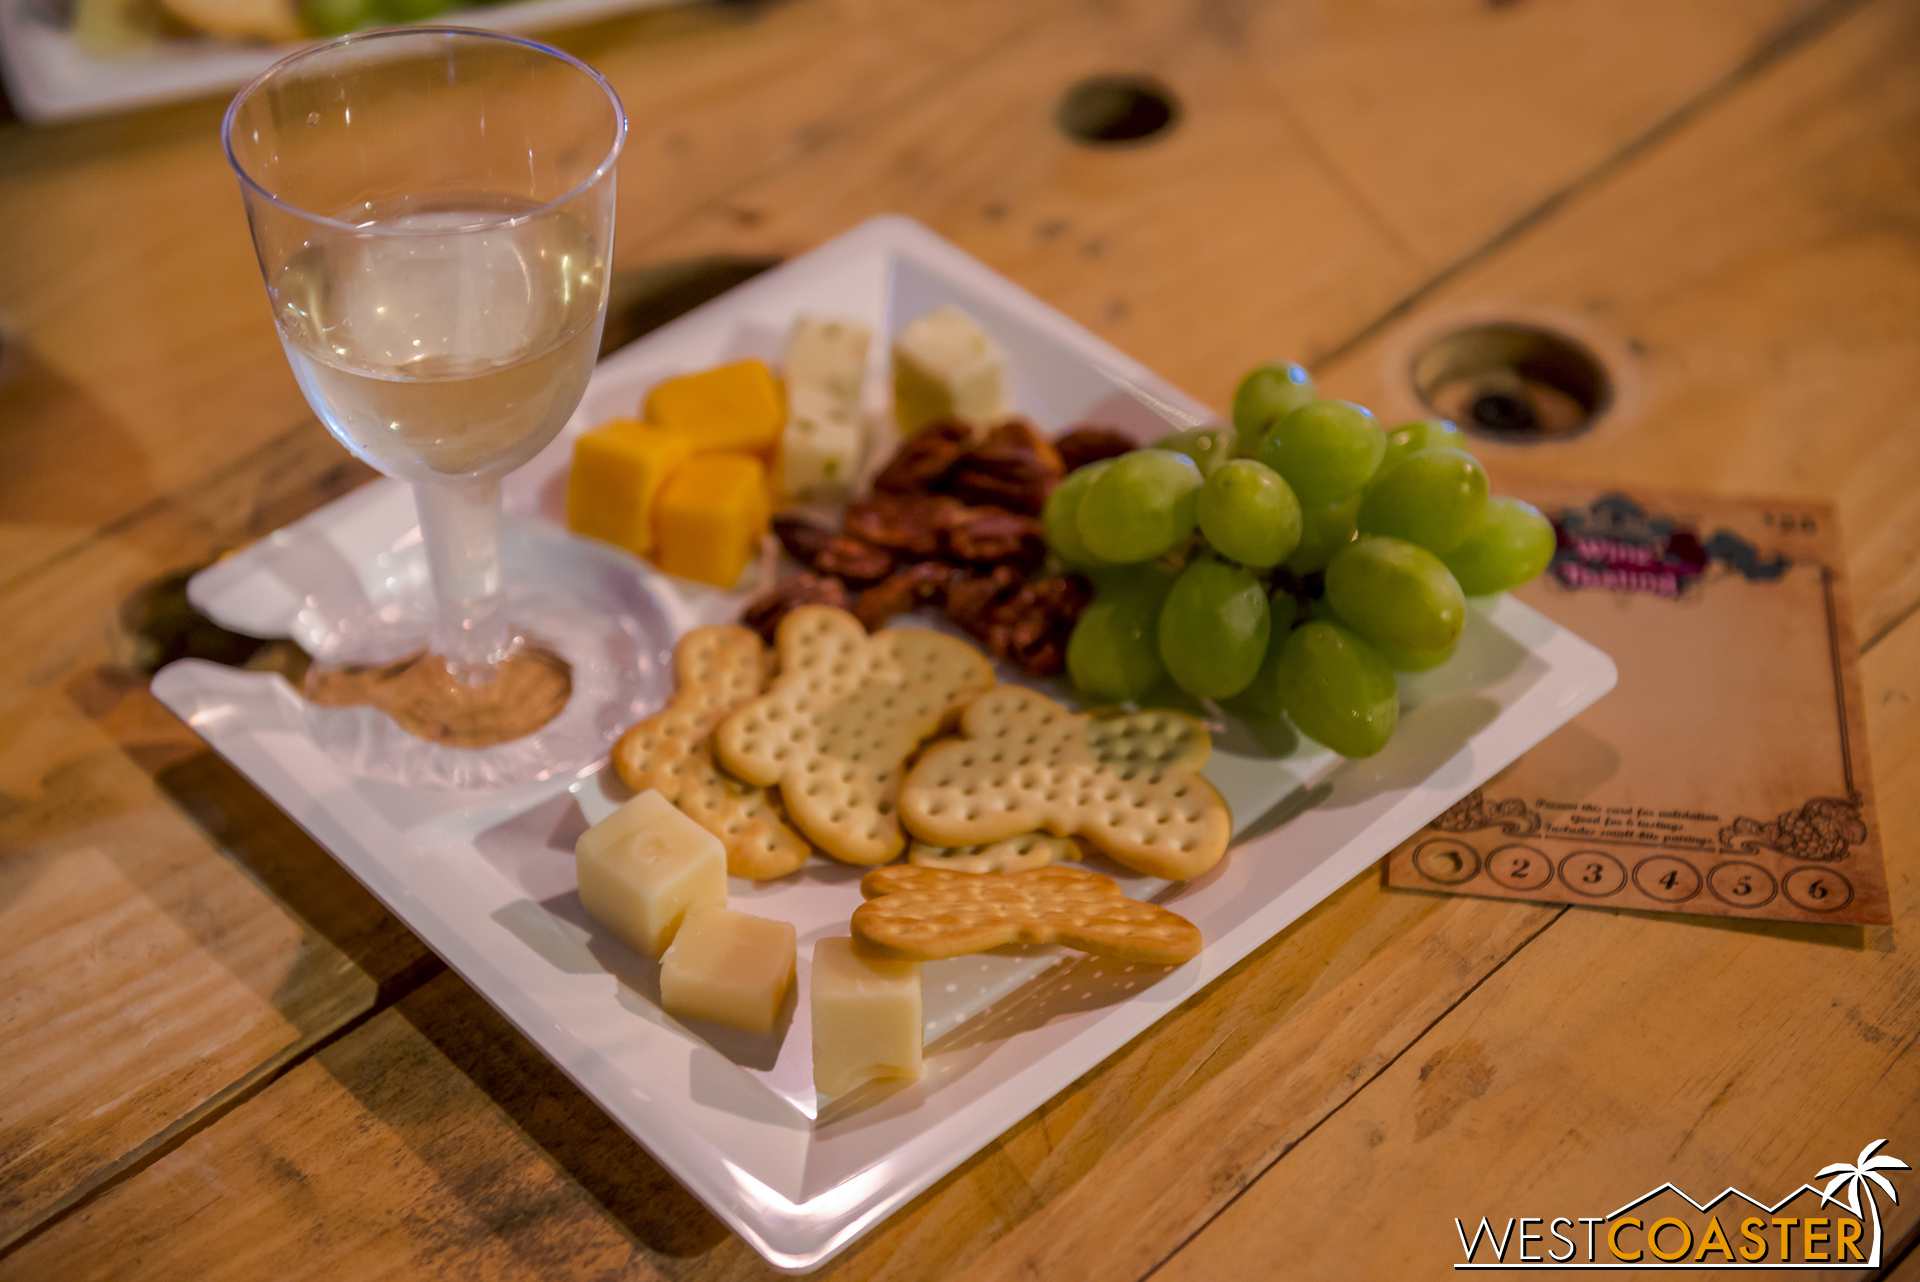 Complementary tasting tray.  Overall, the wine here is an enjoyable, generally good selection.  Nothing amazing, but good quality for the general populace, with enough quality that snobs should also enjoy things.